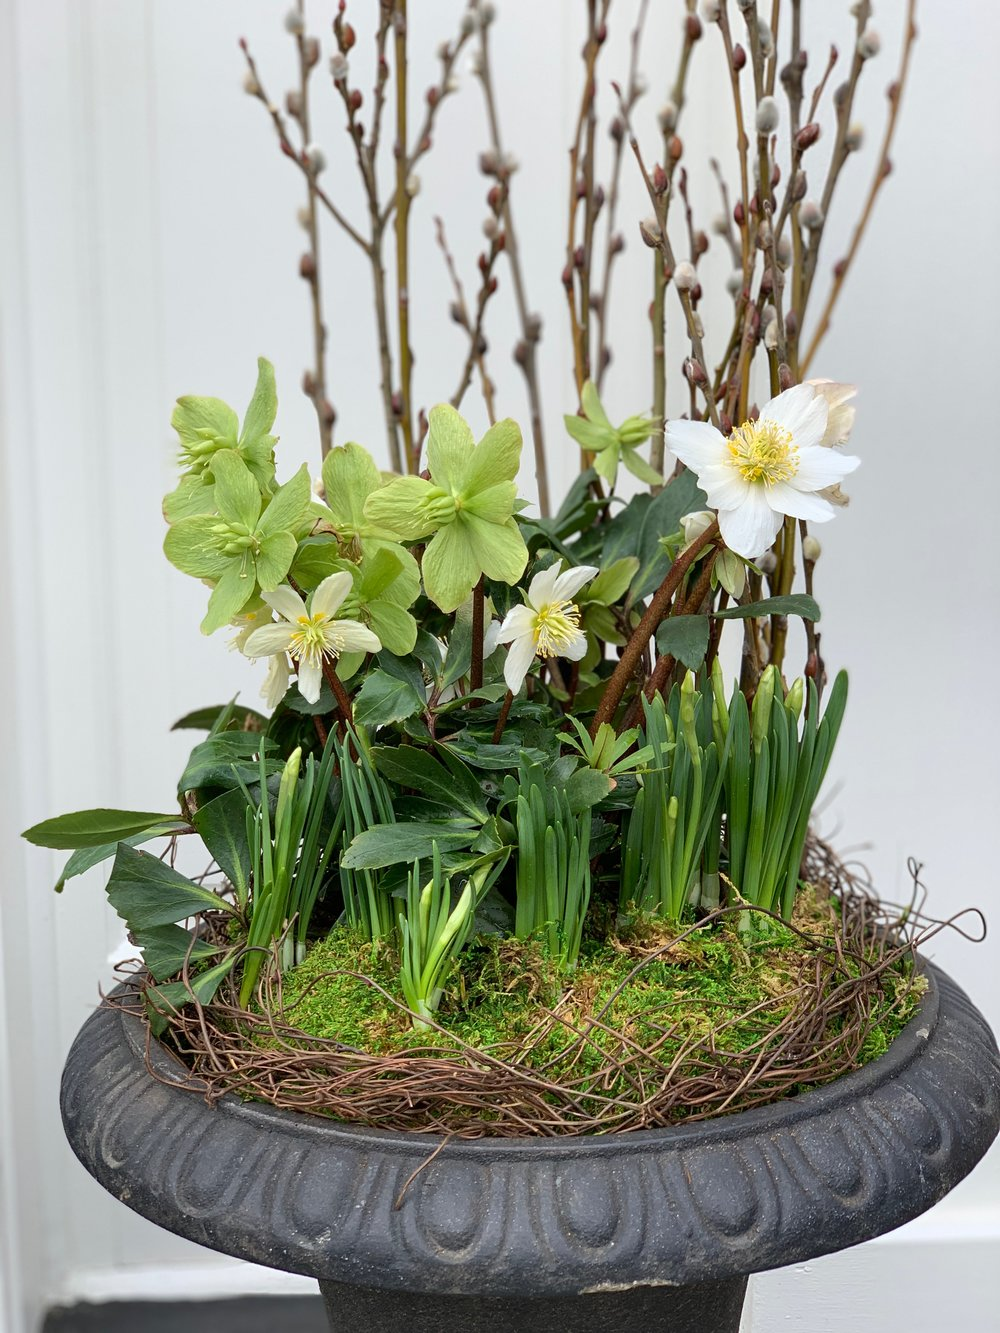 Early Spring container with miniature narcissus, hellebores and pussy willow.